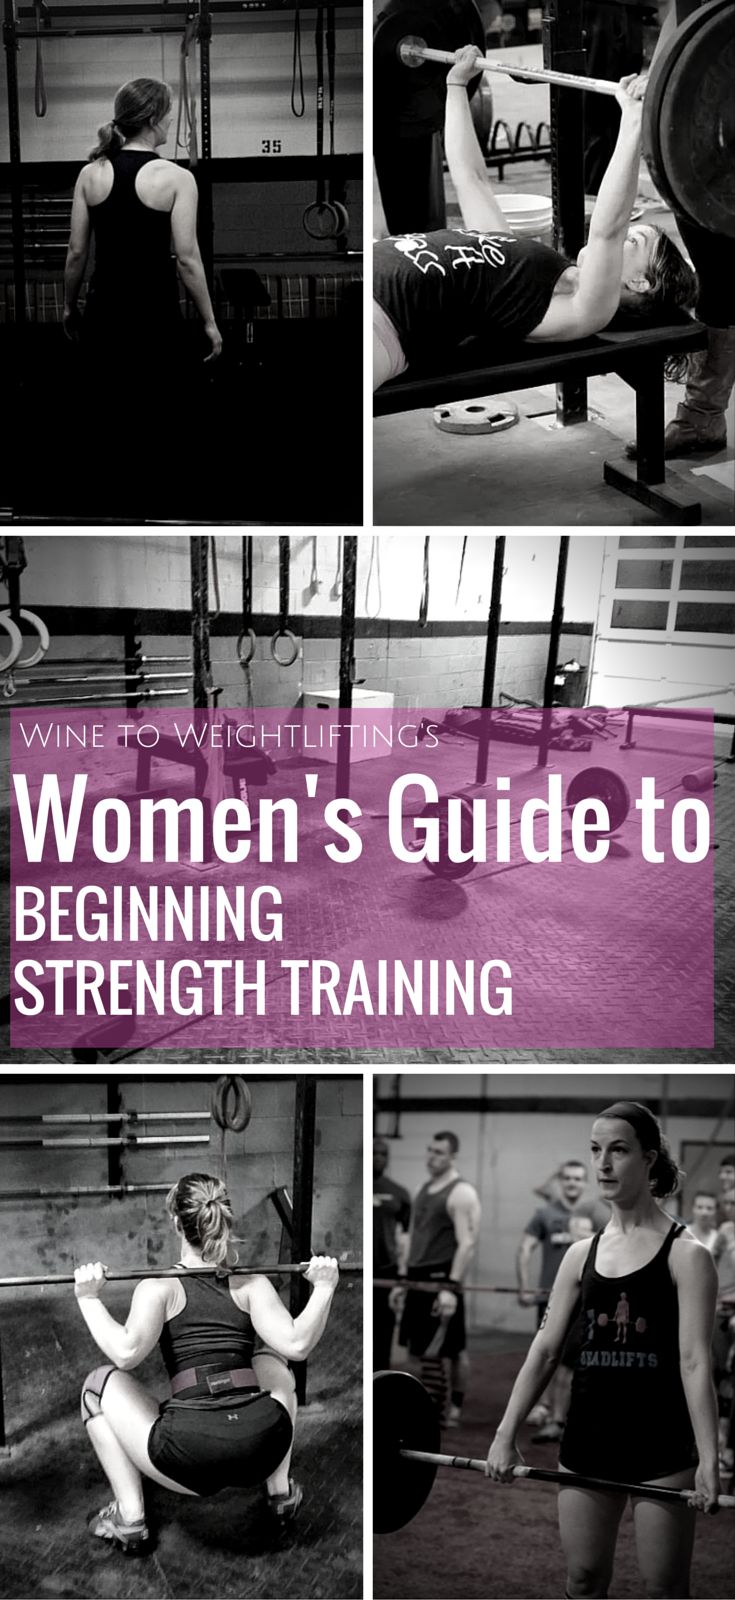 Women's guide to beginning strength training. For any woman who wants to start weightlifting or weight training but isn't sure where to start, here are some helpful hints to get you going.